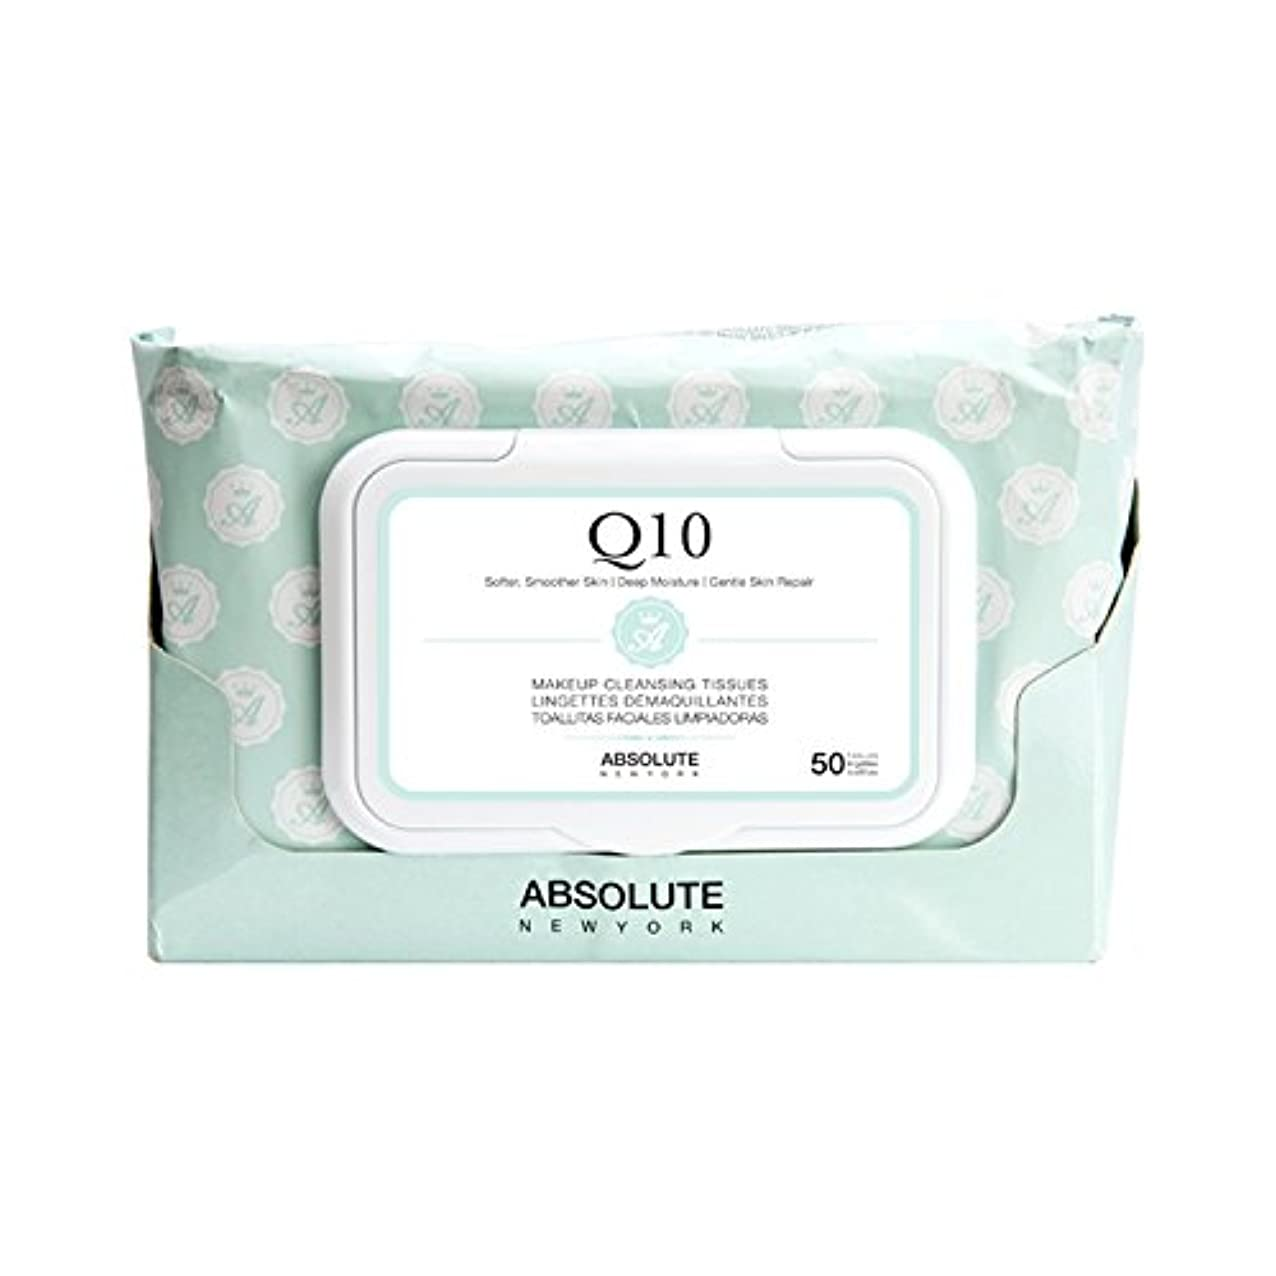 満員真似る東方(6 Pack) ABSOLUTE Makeup Cleansing Tissue 50CT - Q10 (並行輸入品)